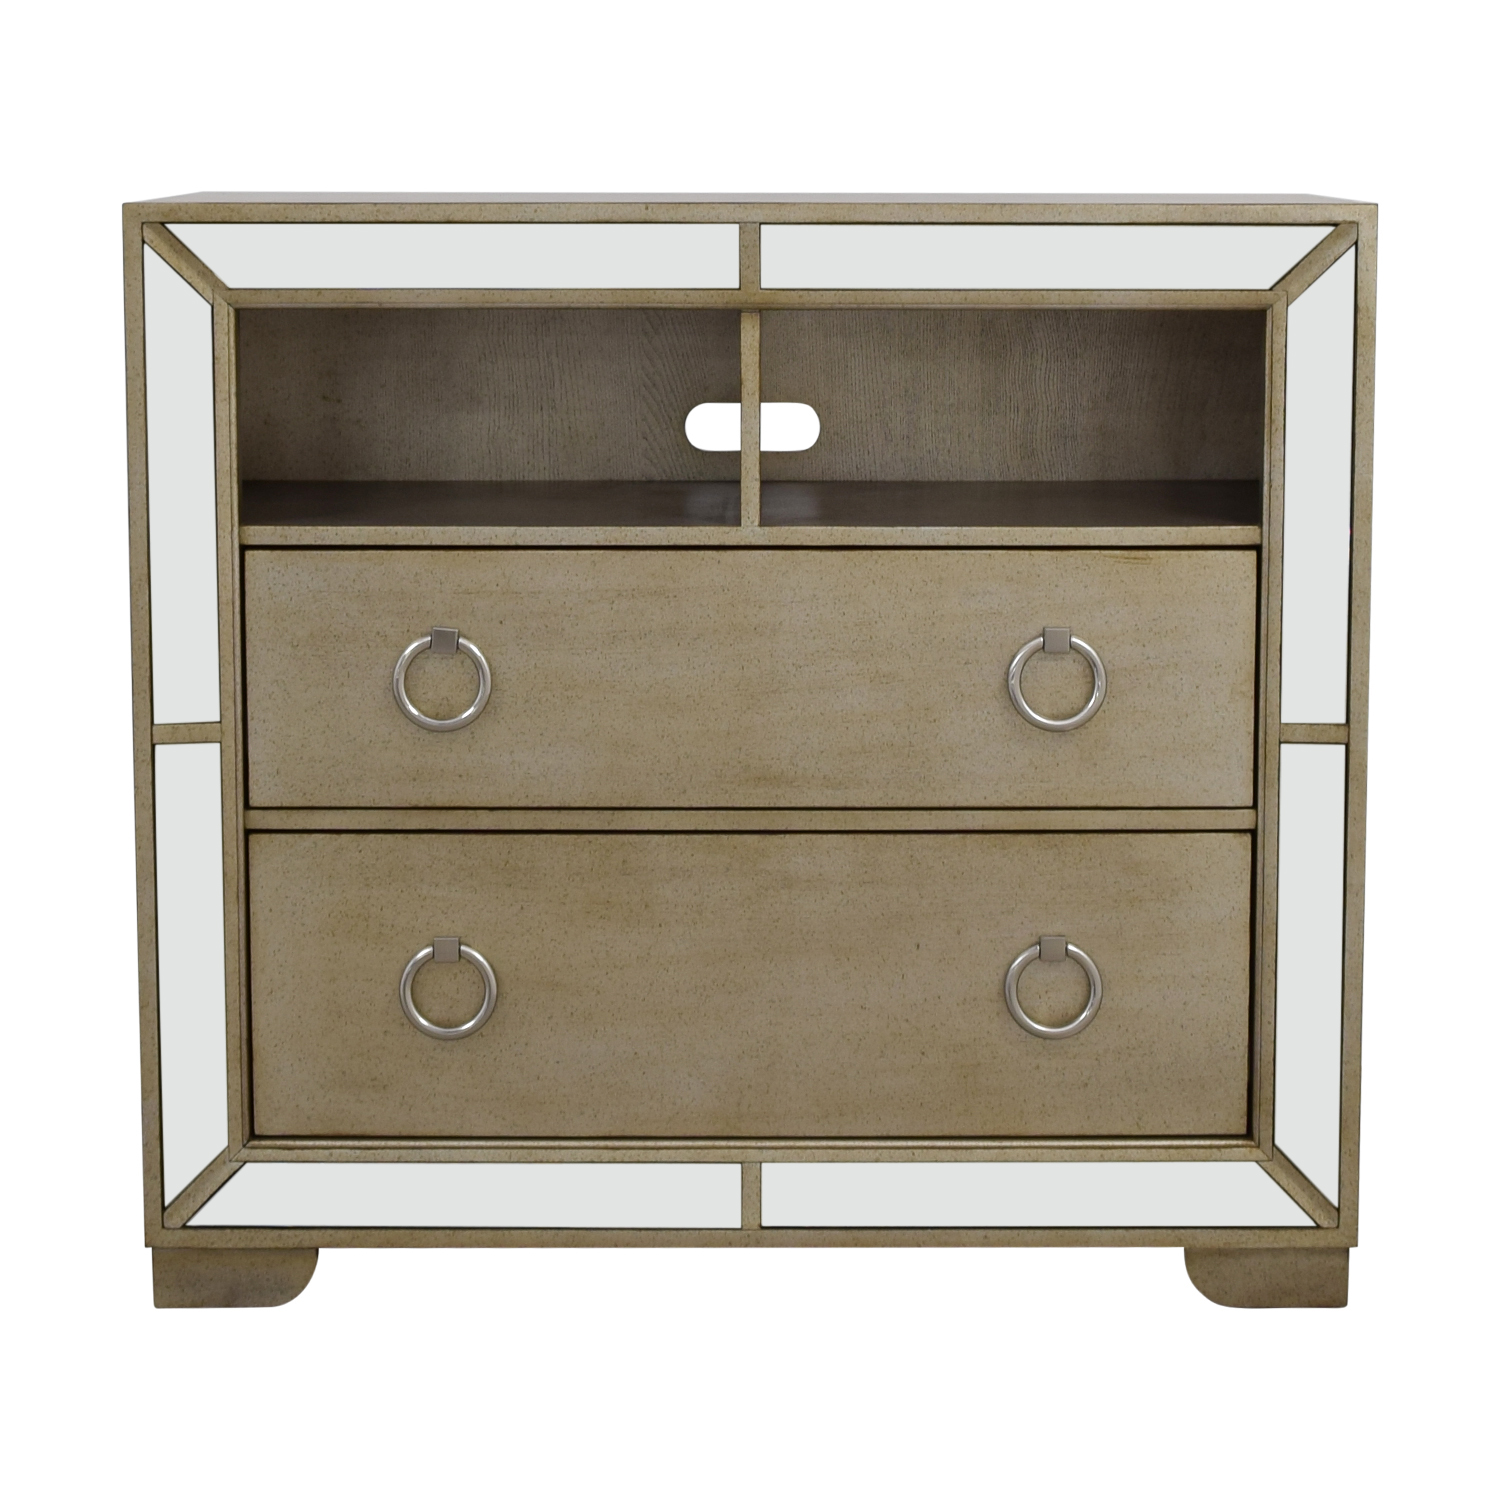 buy Z-Gallerie Art Deco Silver and Mirrored Dresser Z-Gallerie Storage